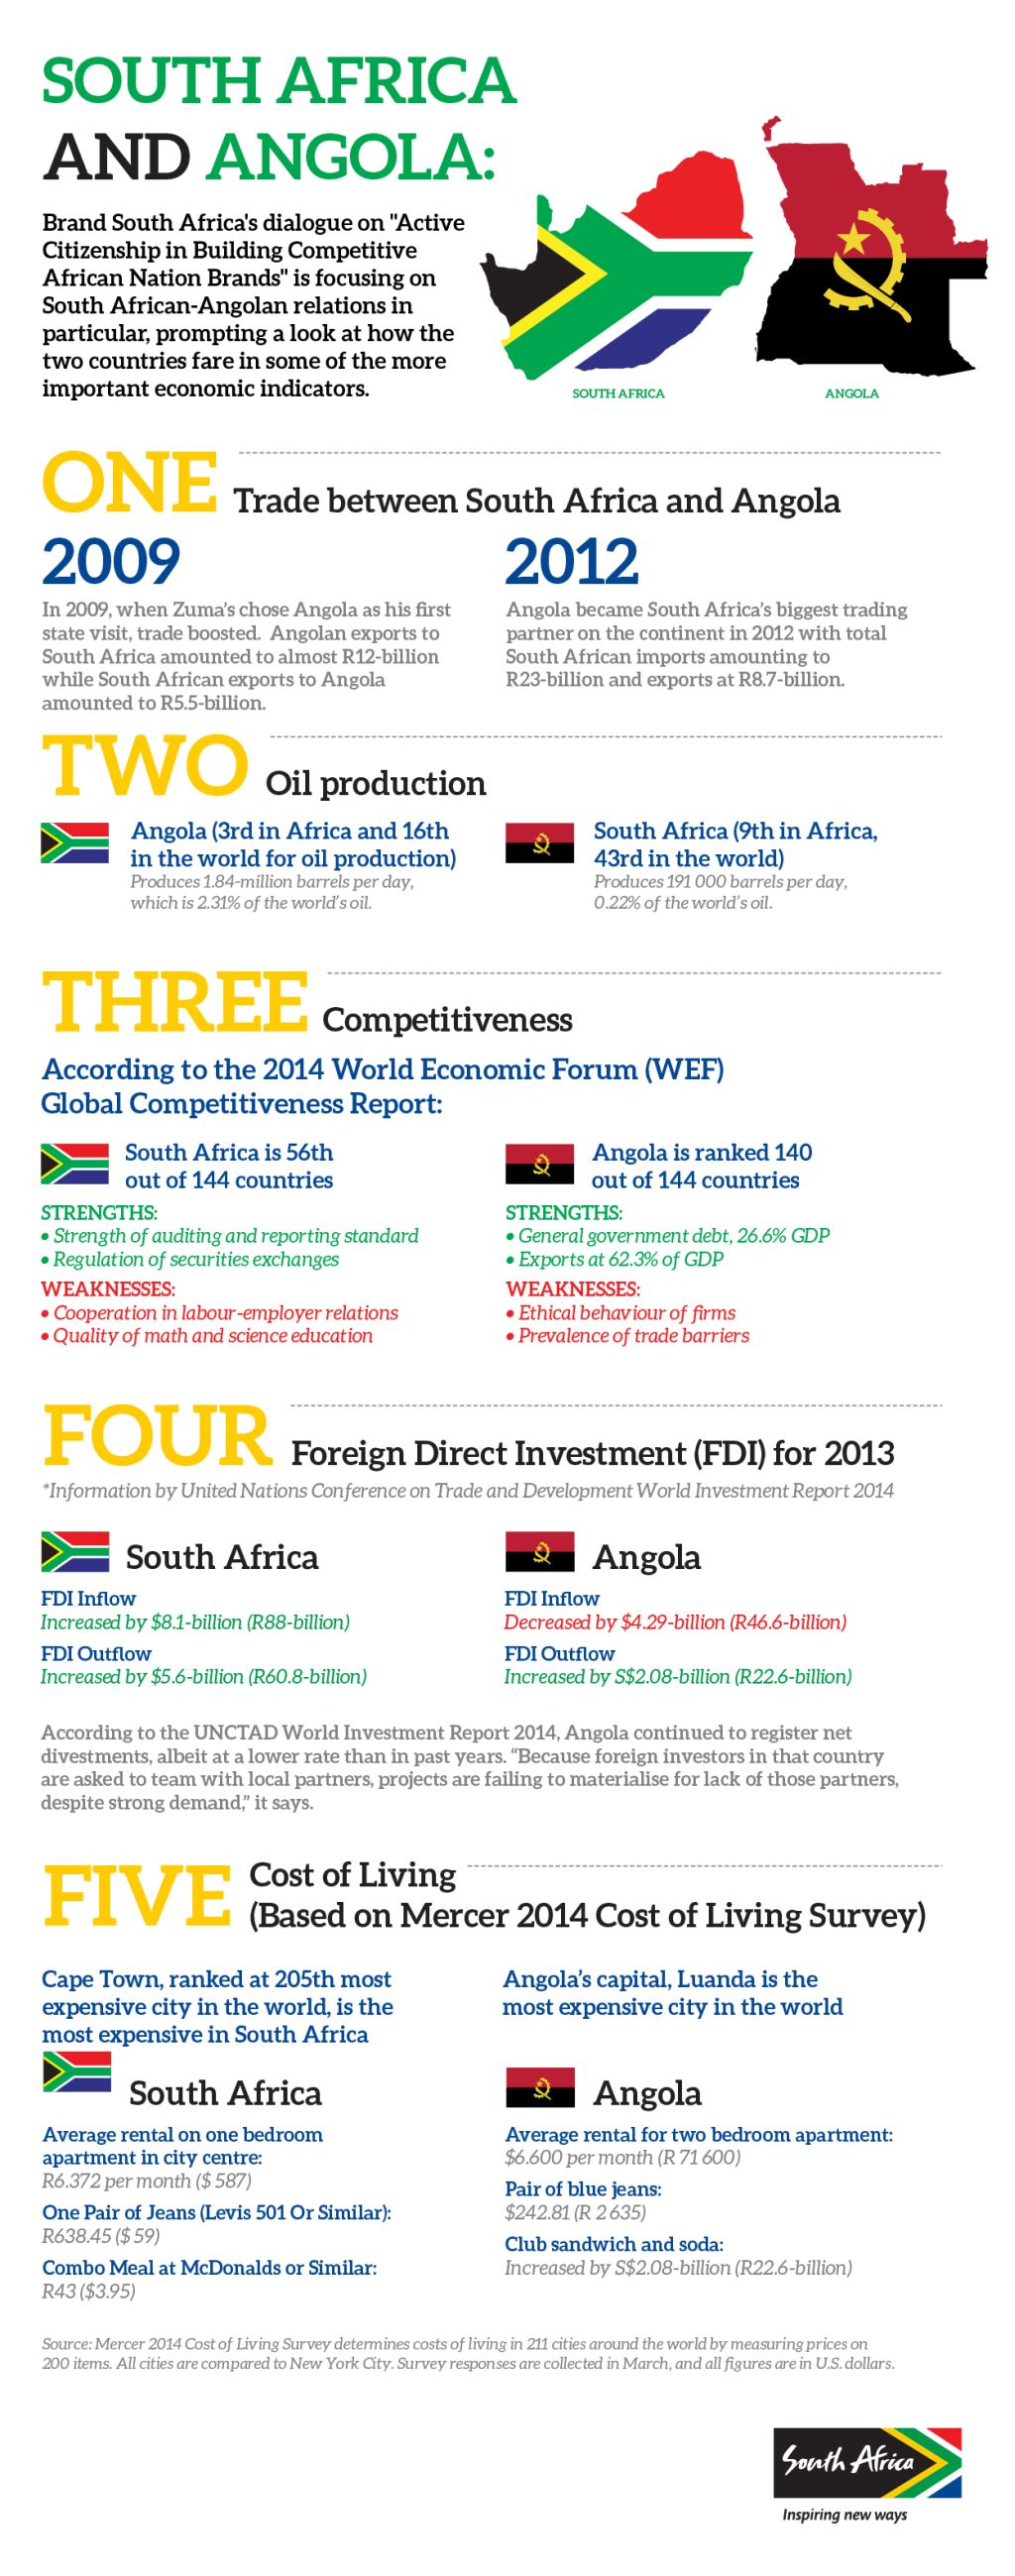 Infographic: South Africa and Angola | Brand South Africa